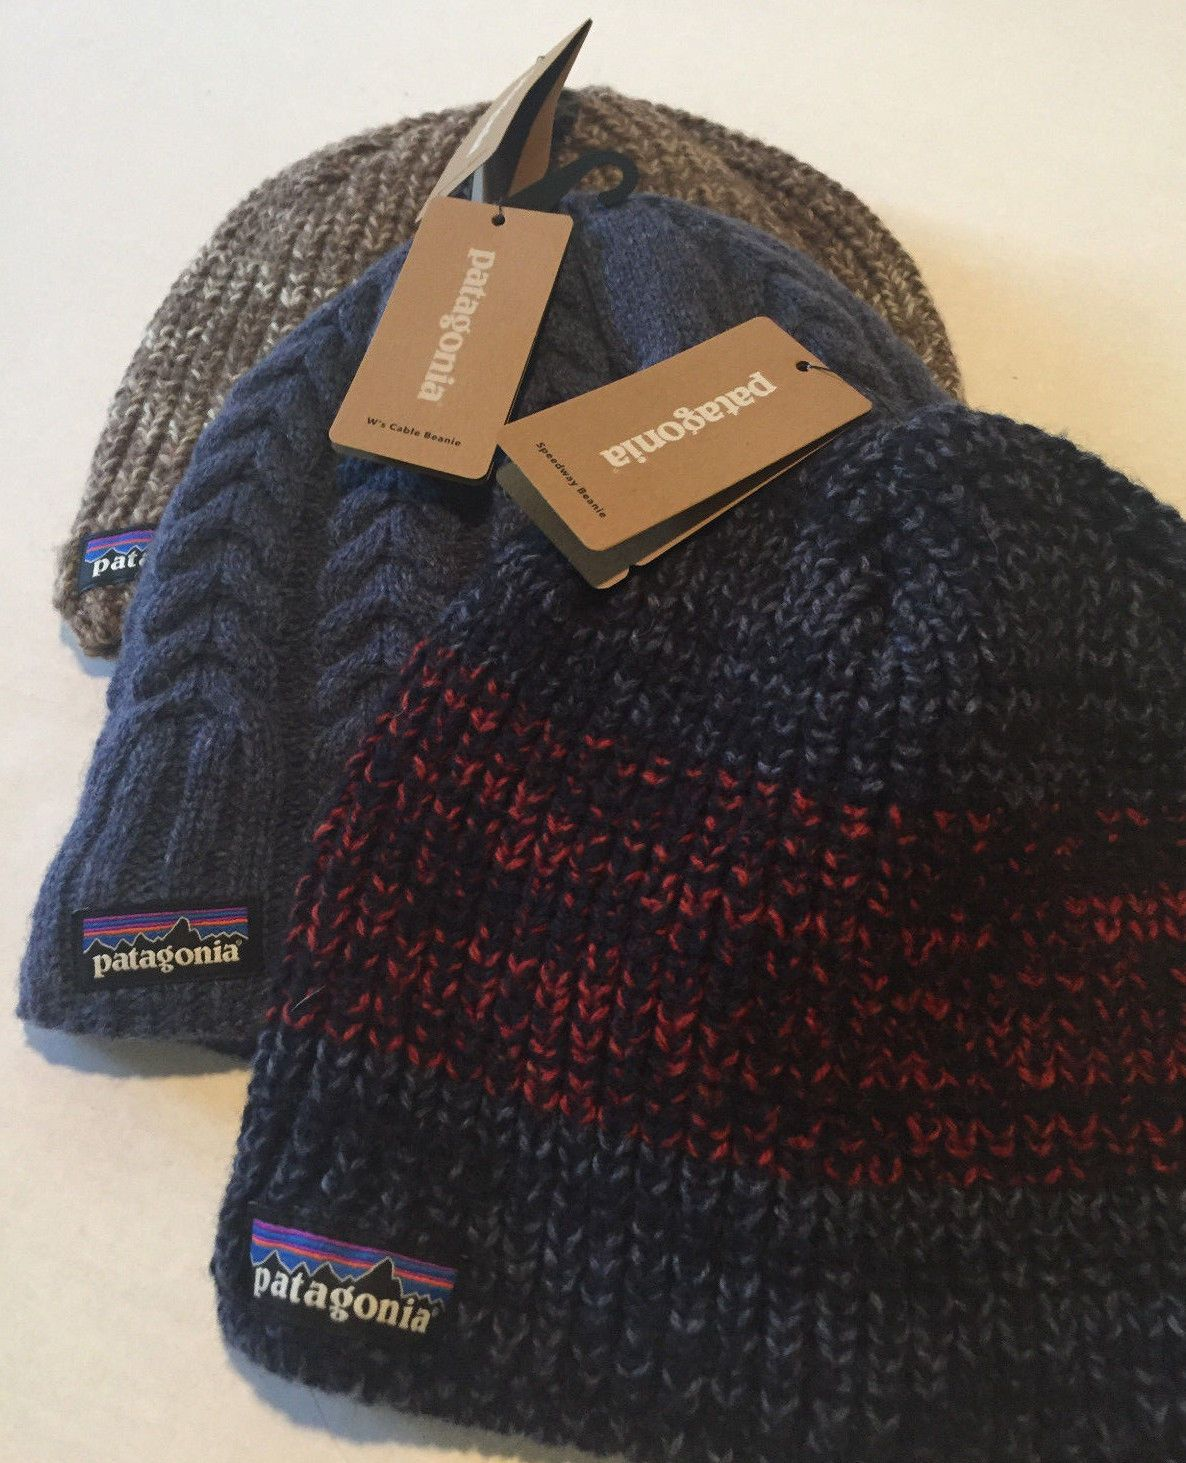 e972c04aead Hats and Headwear 62175  Patagonia Adult Speedway Beanies Nwt Assorted  Colors 70% Wool 25